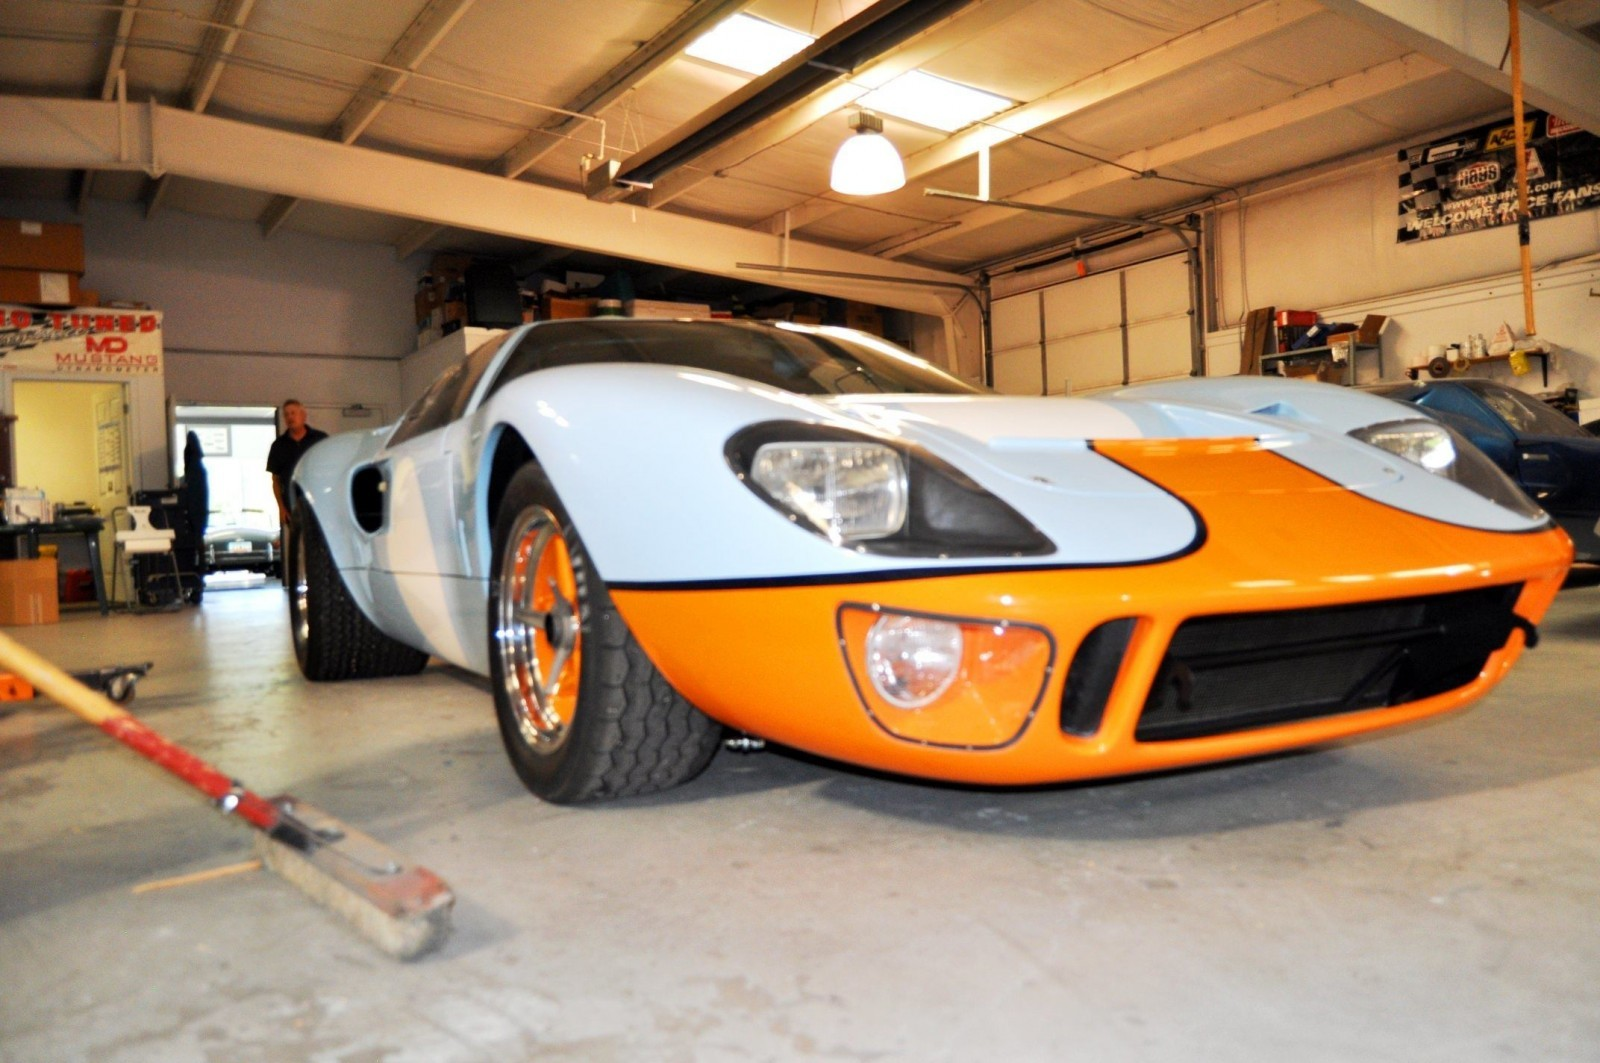 2014 Superformance GT40 Mark I - MEGA Photo Shoot and Ride-Along Videos 30